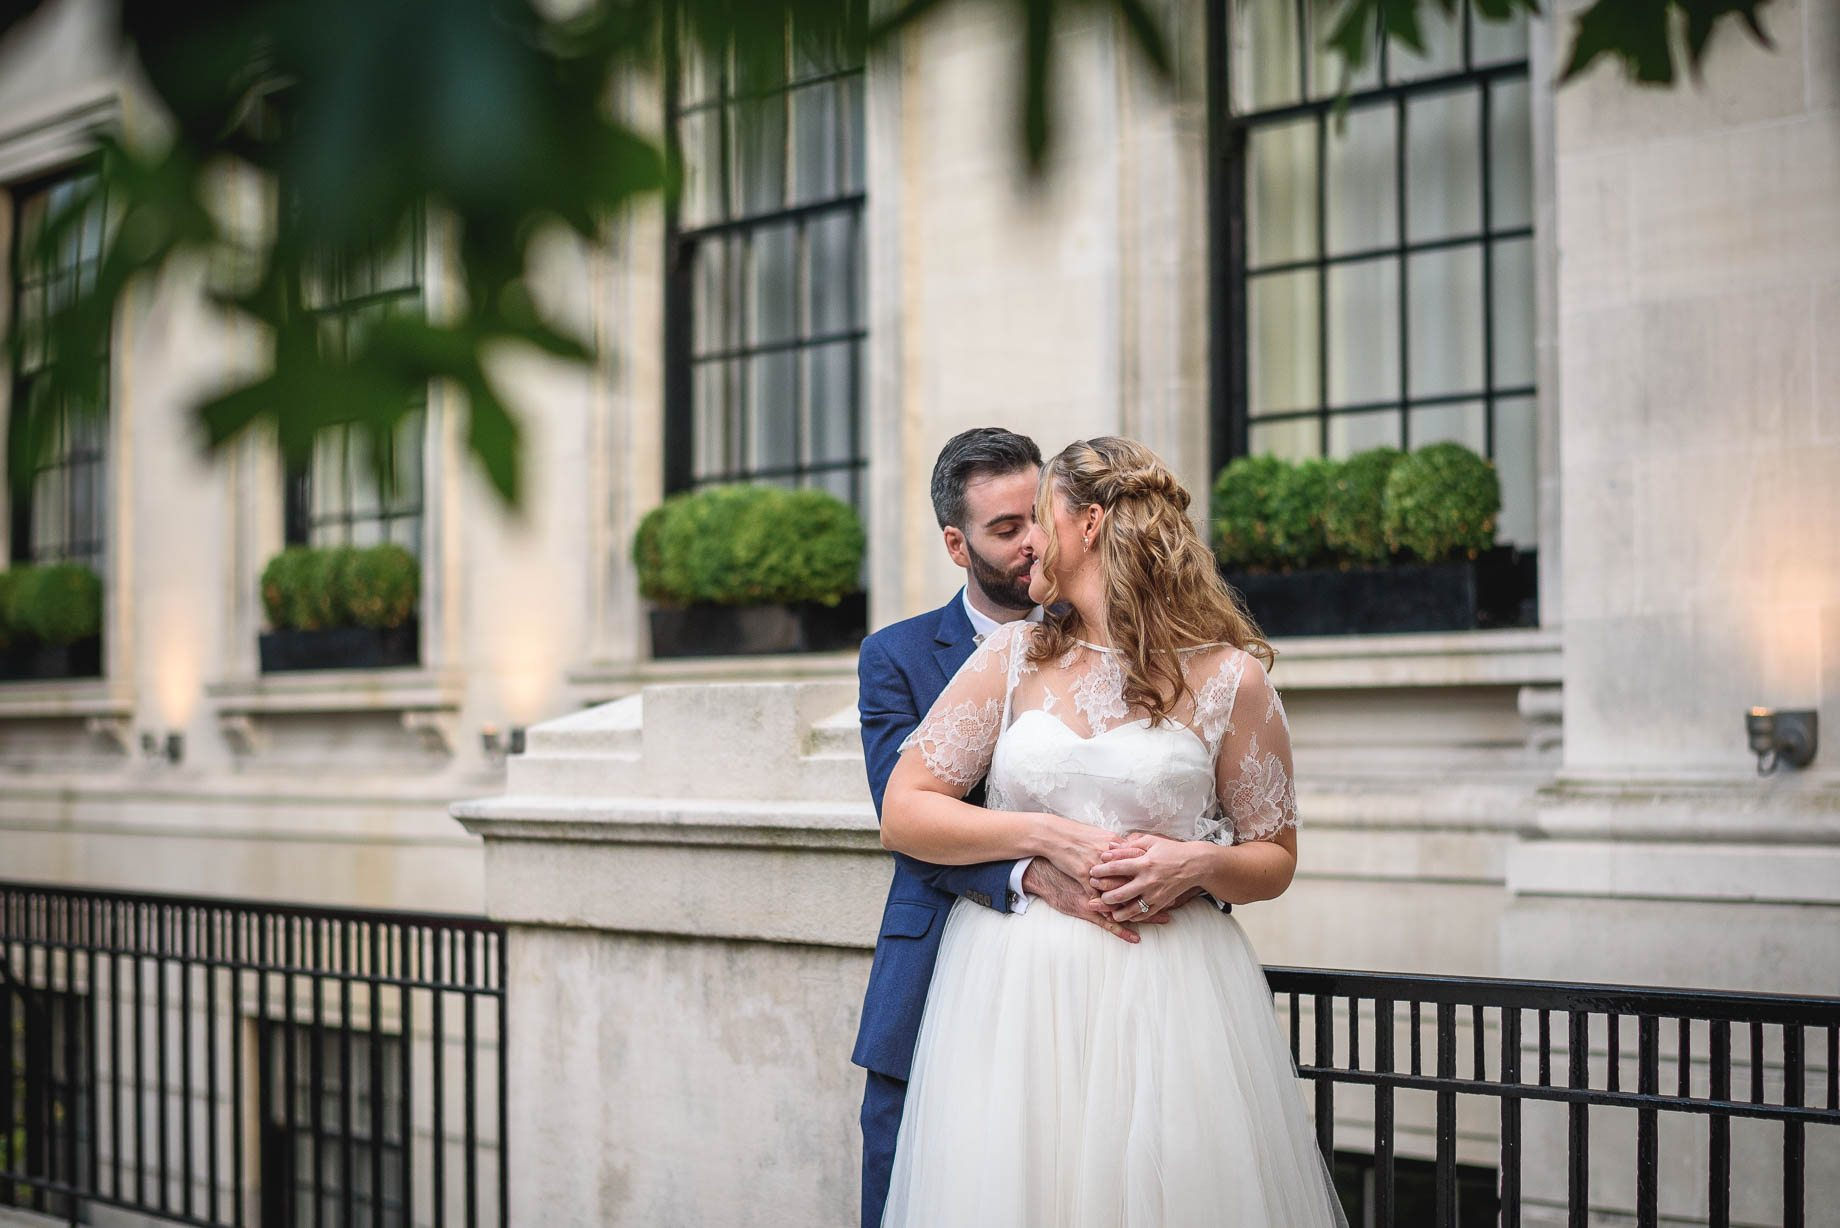 London Wedding Photography - Guy Collier Photography - LJ + Russell (128 of 155)